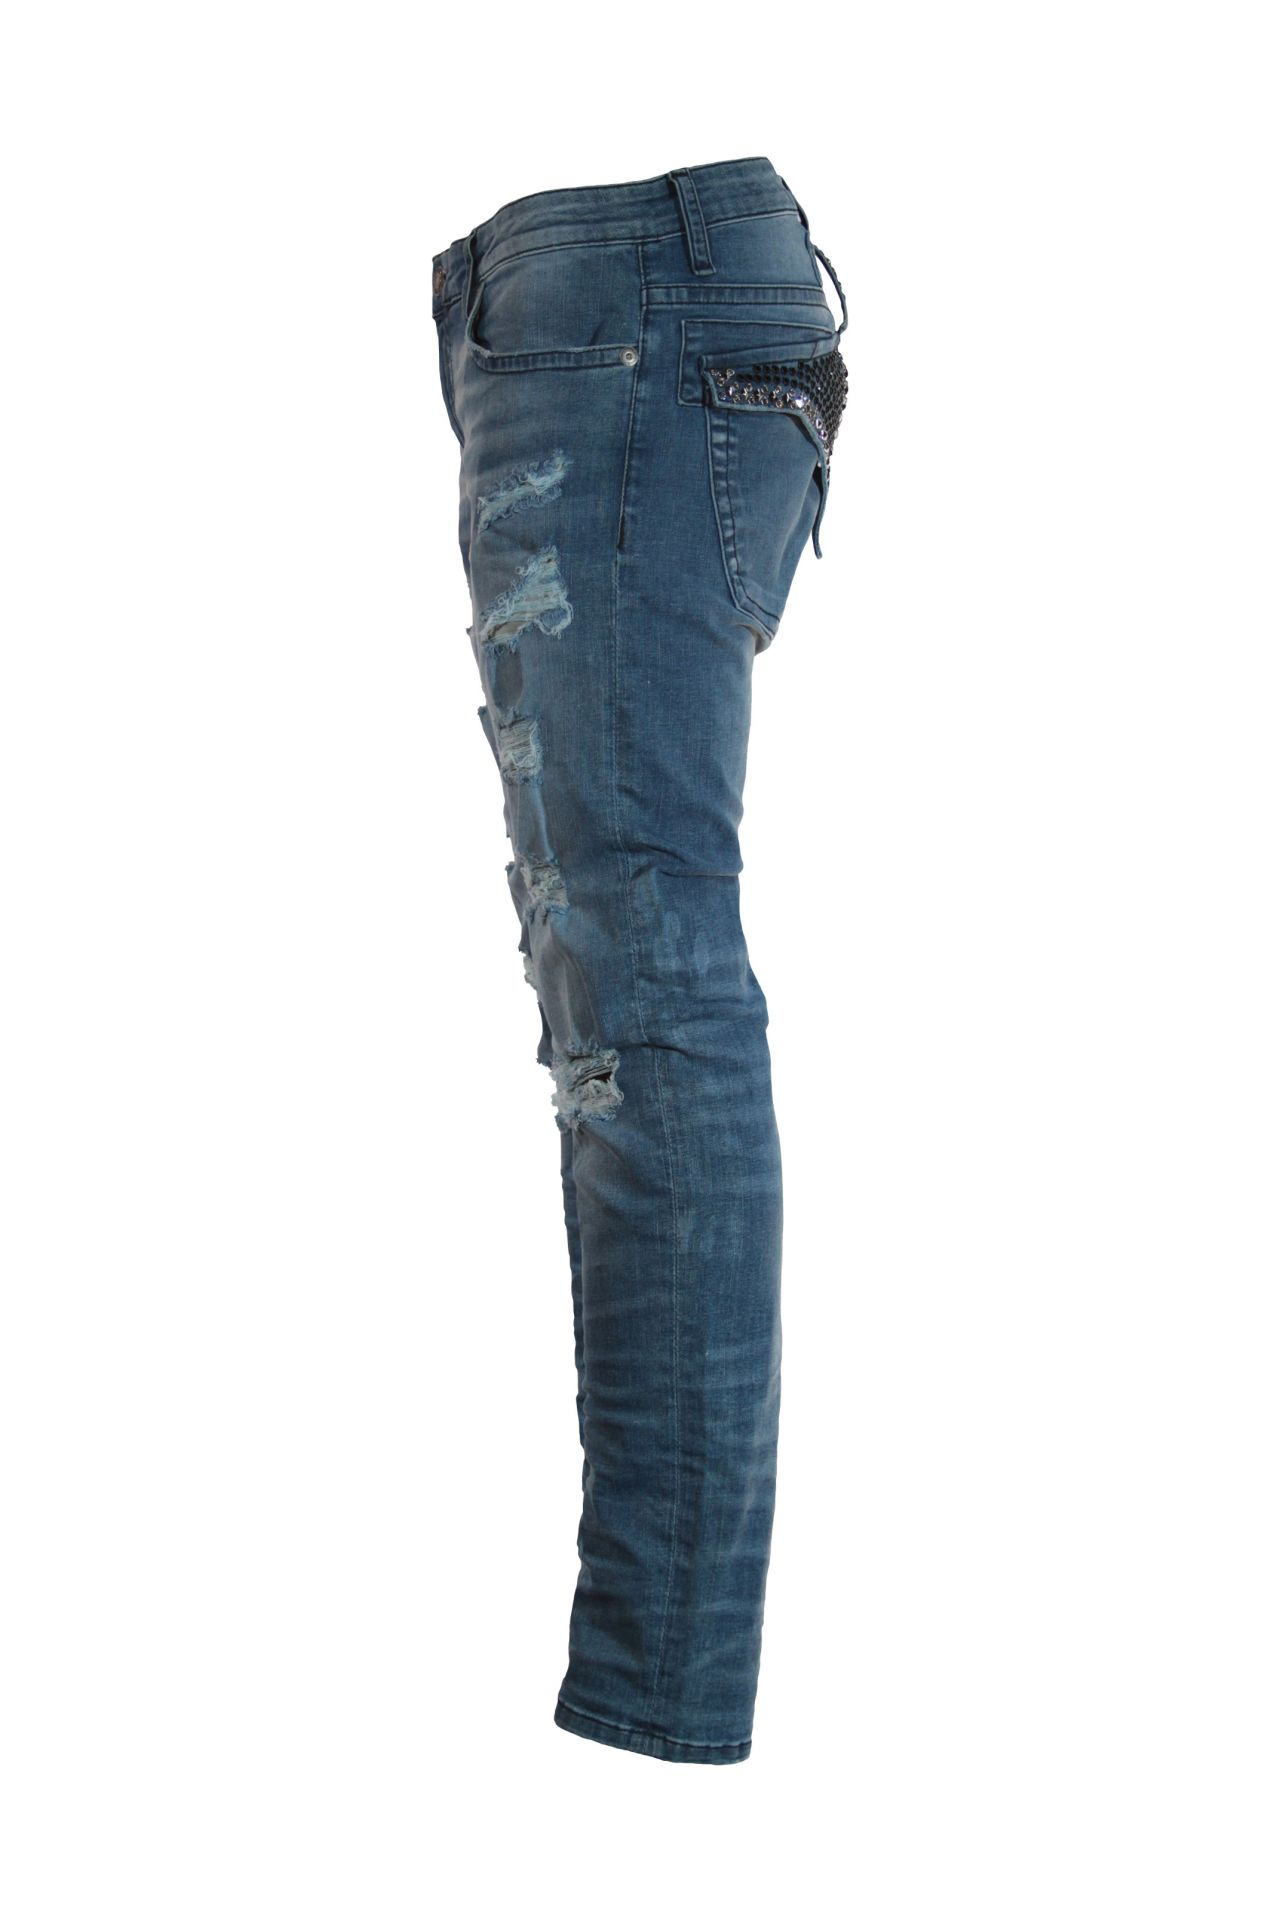 SKINNY JEAN IN ELROY MEDIUM BROKEN BACKING WITH GOLD AND SAPPHIRE SW